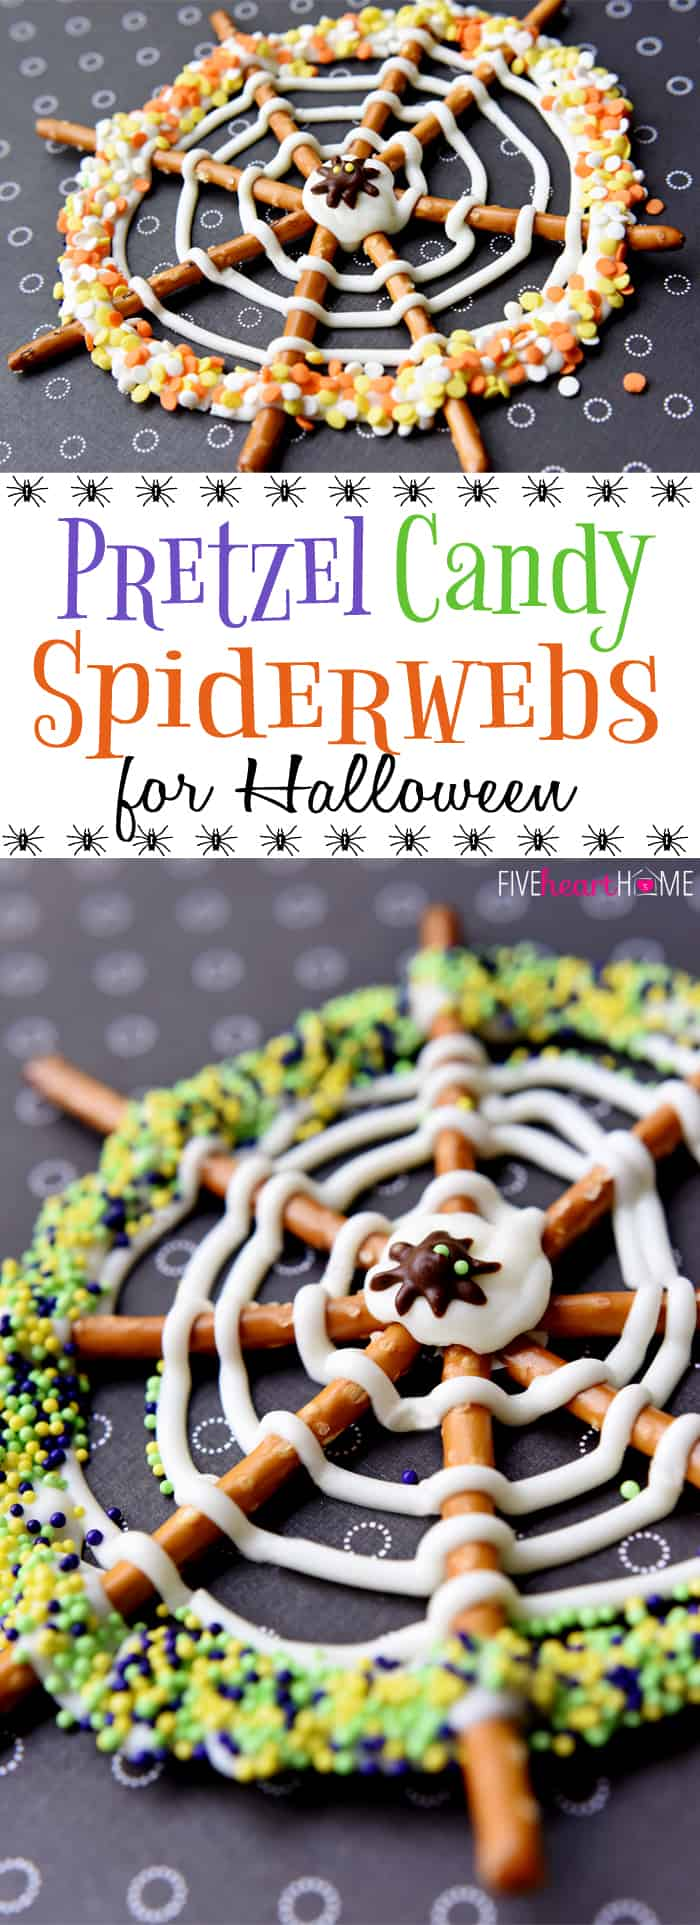 Pretzel Candy Spiderwebs